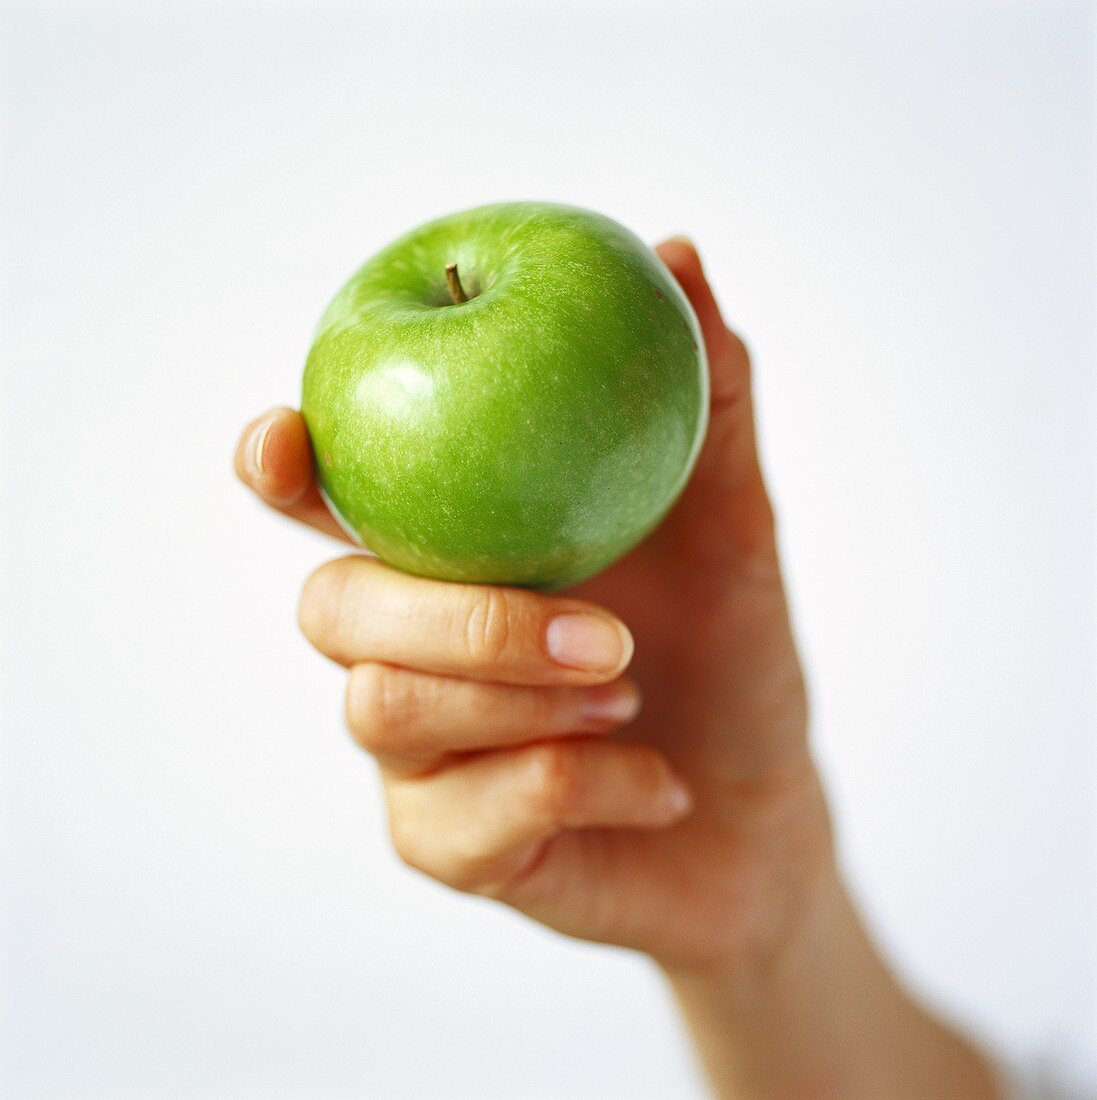 Hand holding a green apple